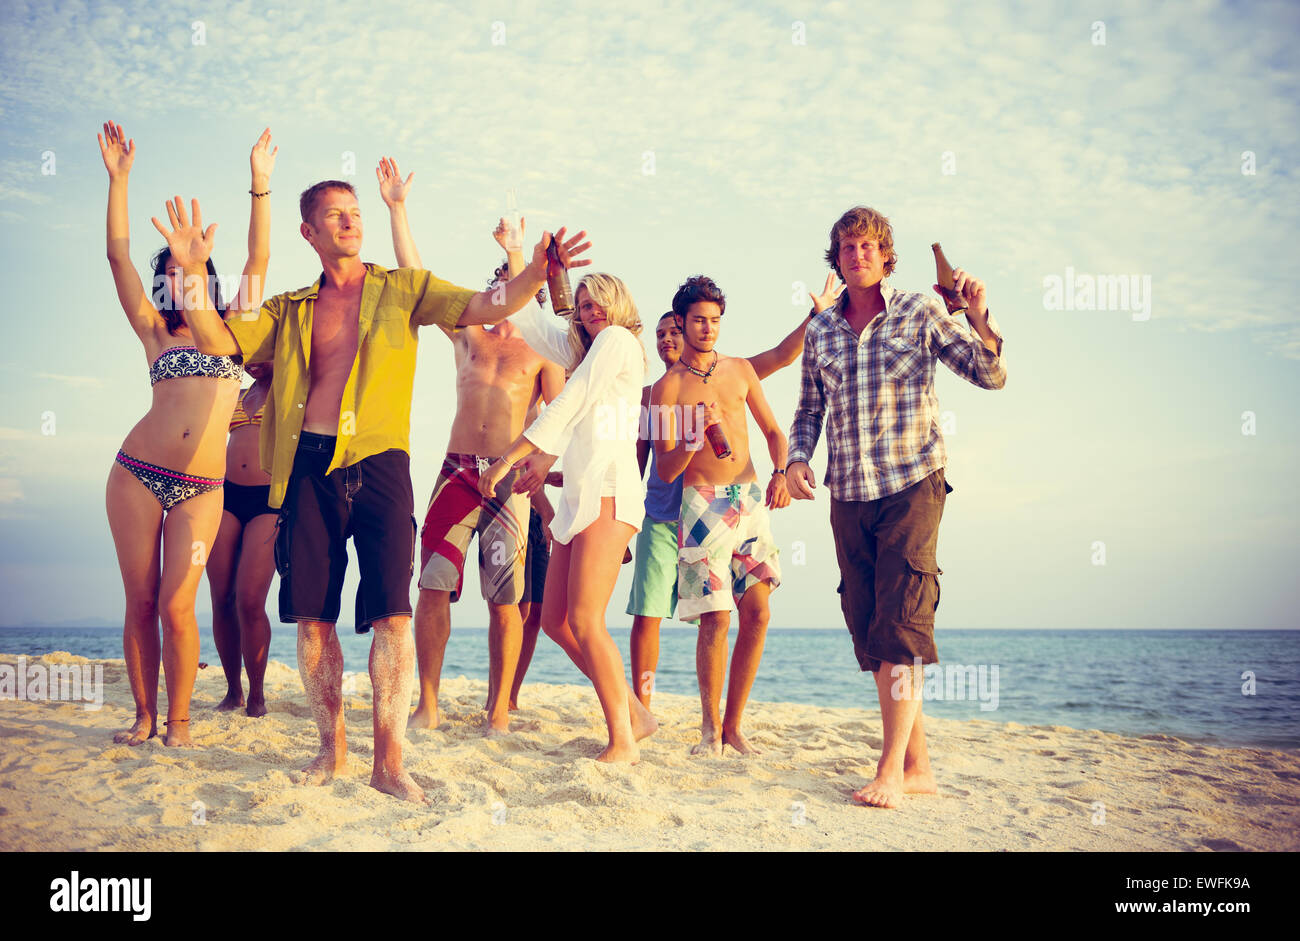 Group of people party on the beach. - Stock Image